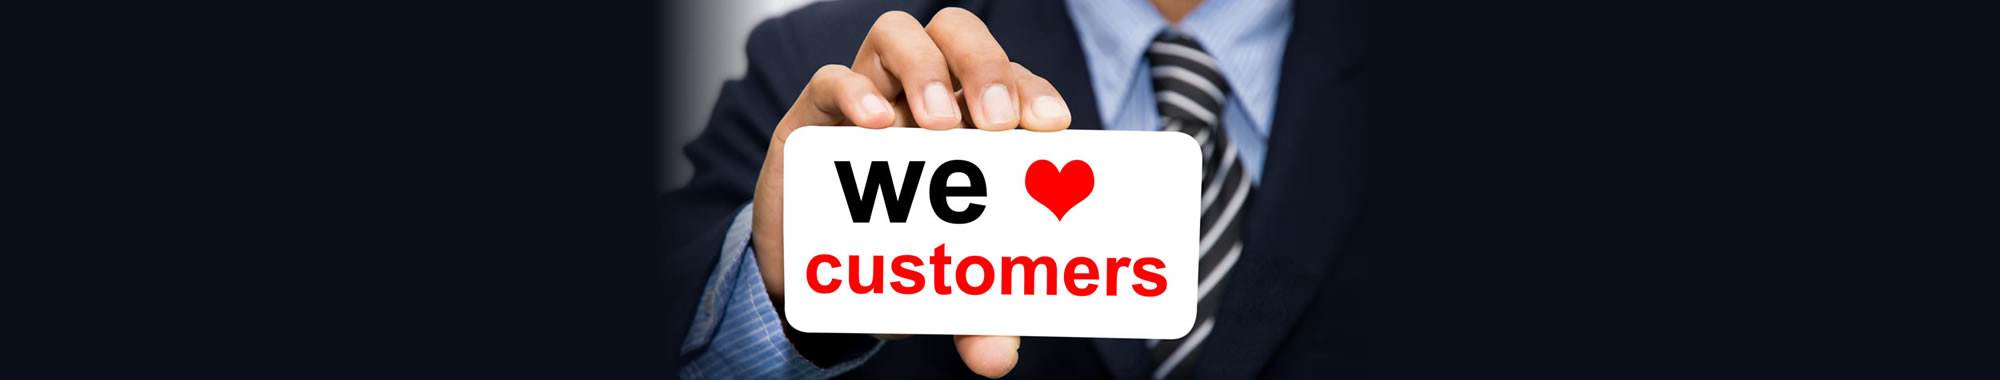 "An image with the words ""We love customers"" depicts a Refer A Client special offer."